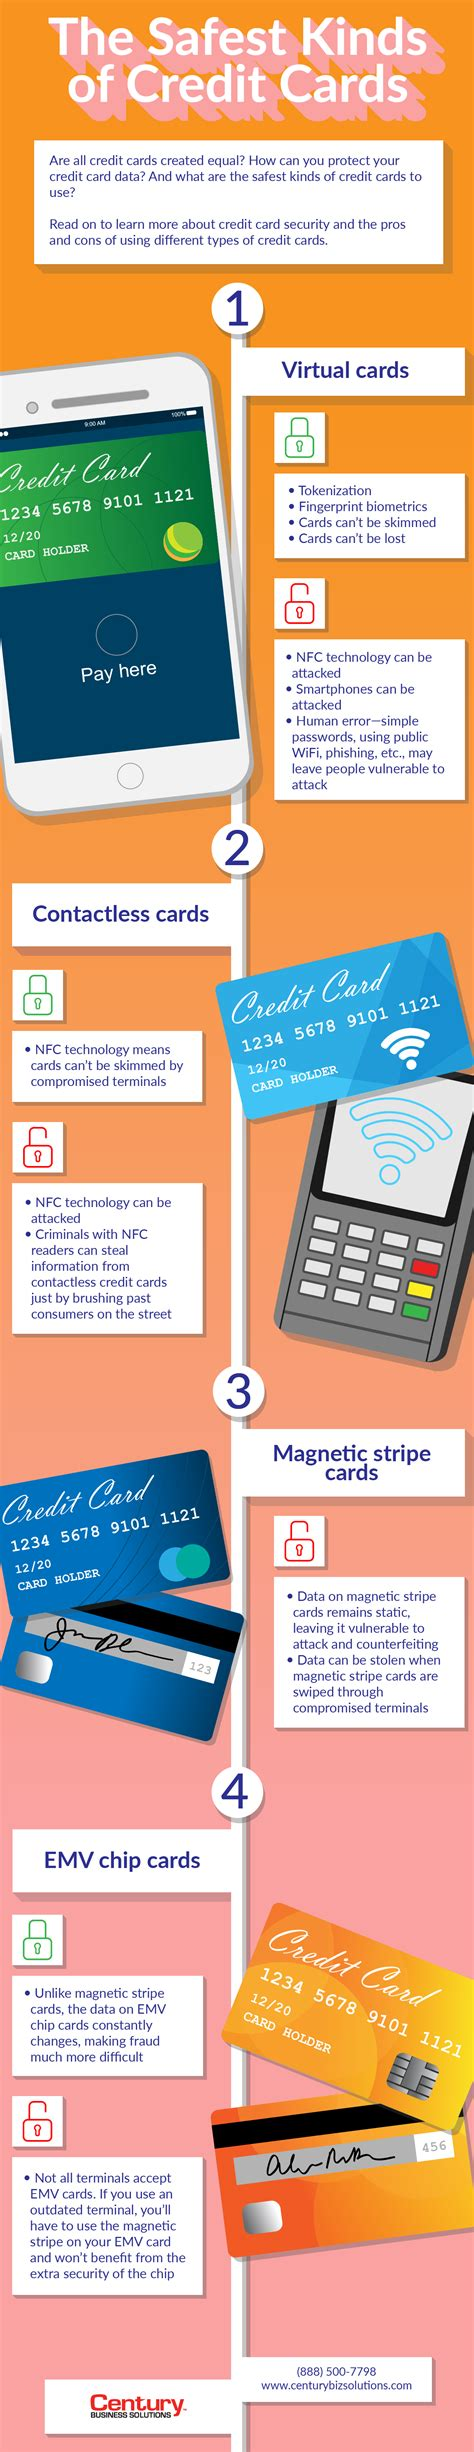 Maybe you would like to learn more about one of these? The Safest Kinds of Credit Cards